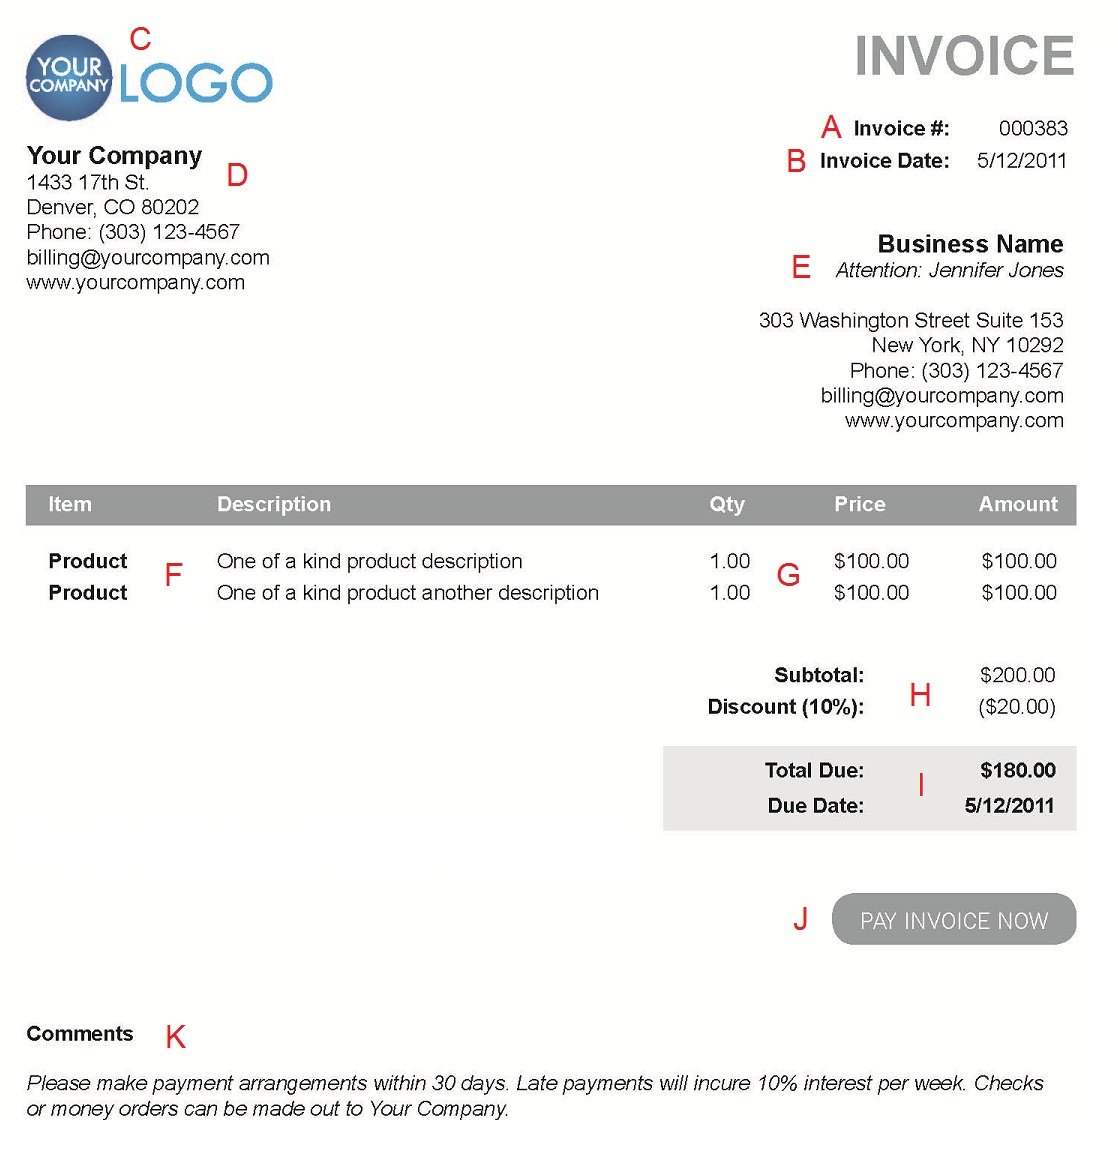 Coolmathgamesus  Outstanding The  Different Sections Of An Electronic Payment Invoice With Marvelous A  With Appealing Invoice Template Pdf Free Also Commercial Invoice Excel In Addition Example Invoice Word And Fee Invoice As Well As Invoice Templates Microsoft Additionally Free Invoice Service From Paysimplecom With Coolmathgamesus  Marvelous The  Different Sections Of An Electronic Payment Invoice With Appealing A  And Outstanding Invoice Template Pdf Free Also Commercial Invoice Excel In Addition Example Invoice Word From Paysimplecom